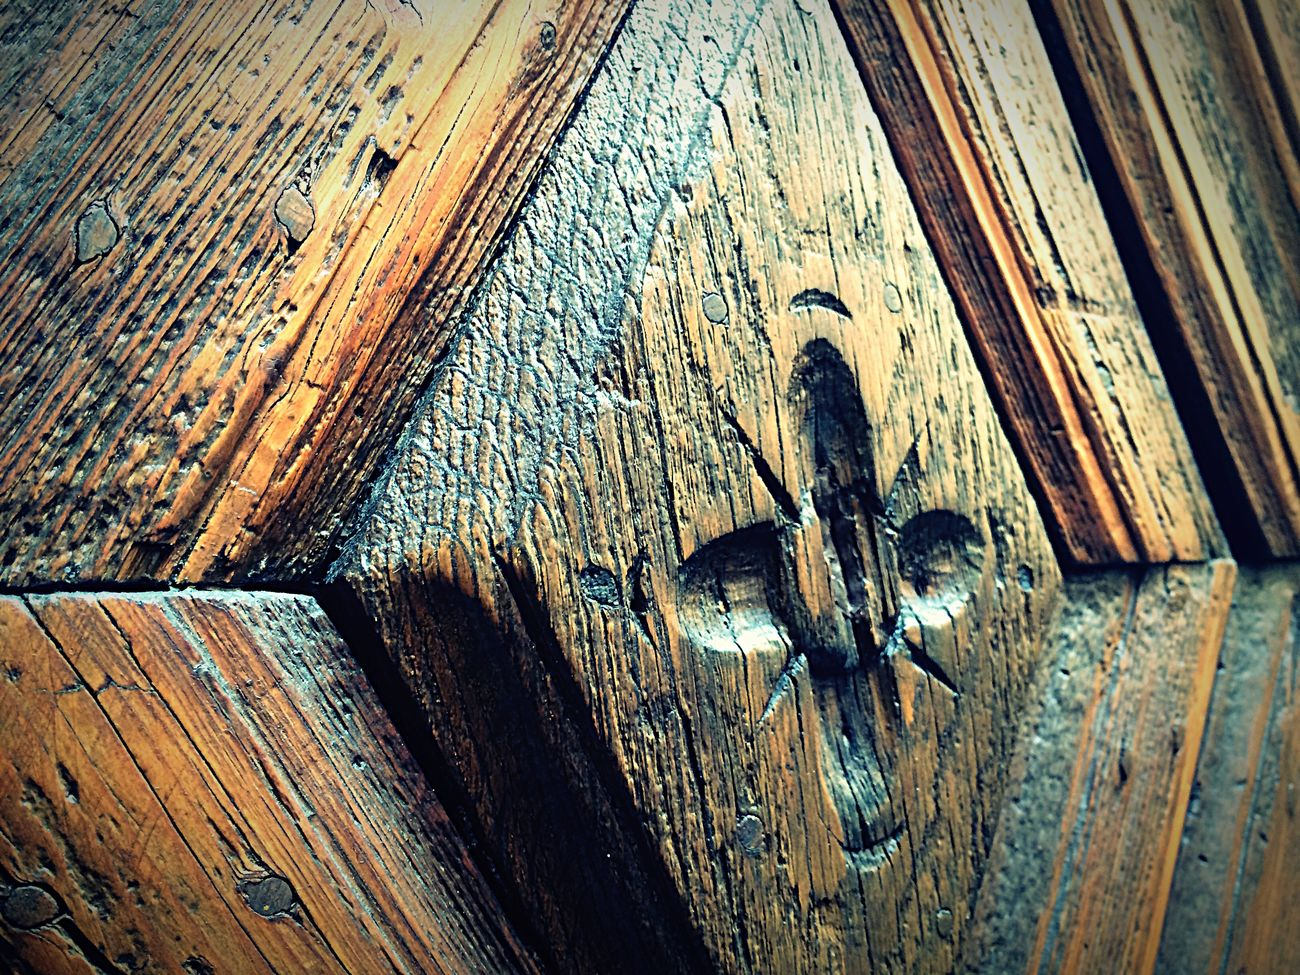 This is a door🌲 Passion Photographer Taking Photos Textures And Surfaces Door Wood Design IPhoneography Iphonephotography Wood - Material Wood Doors